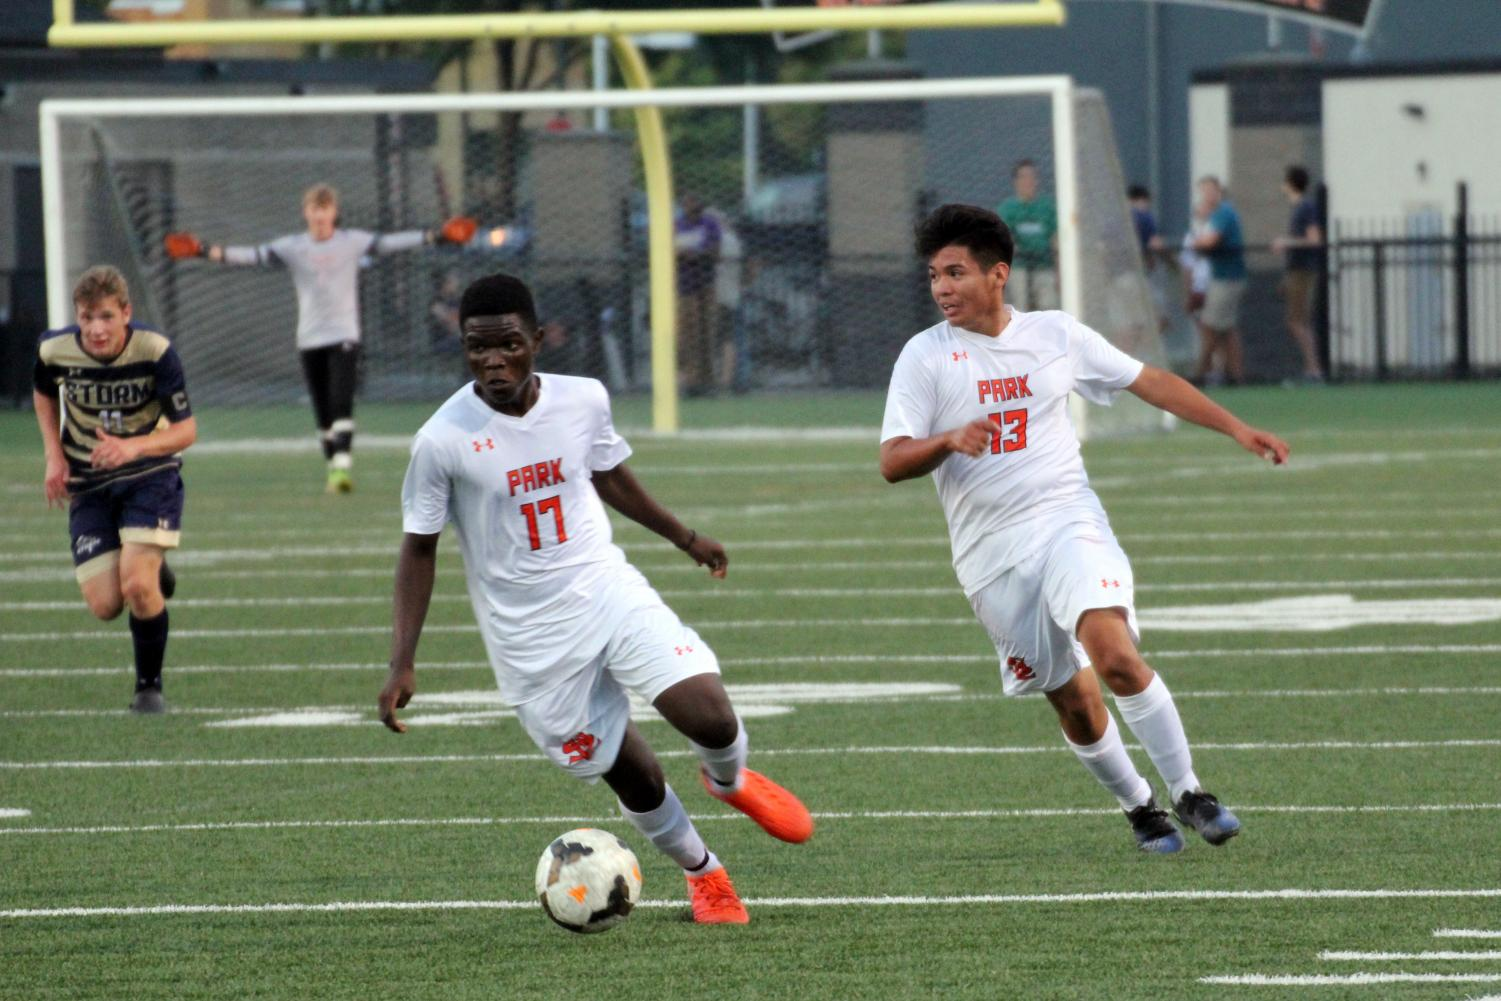 Seniors Randy Mayele and Antonio Olivas-Reyes work to get the ball away from their side of the field. Park soccer played Chanhassen Sept. 14.